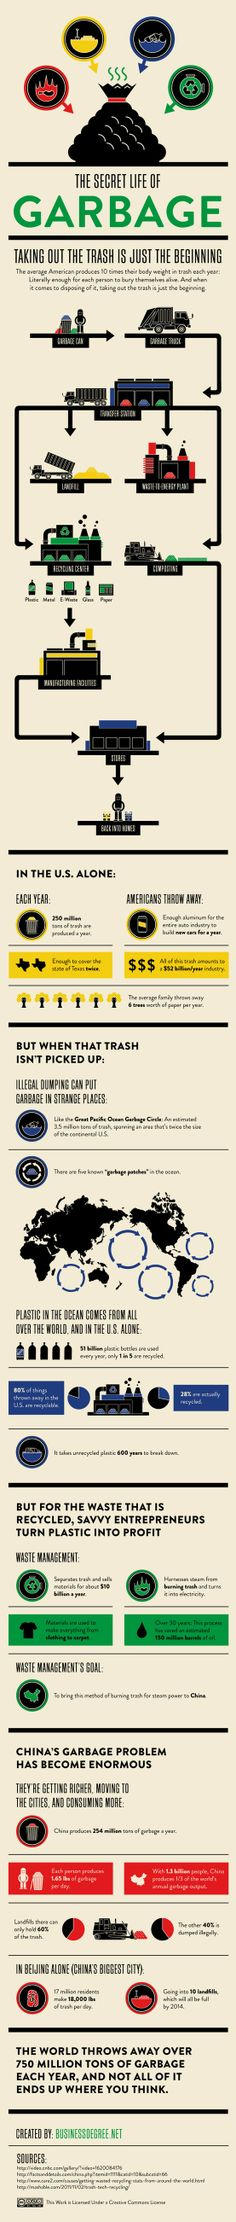 [Infographic] The Secret Life of Garbage